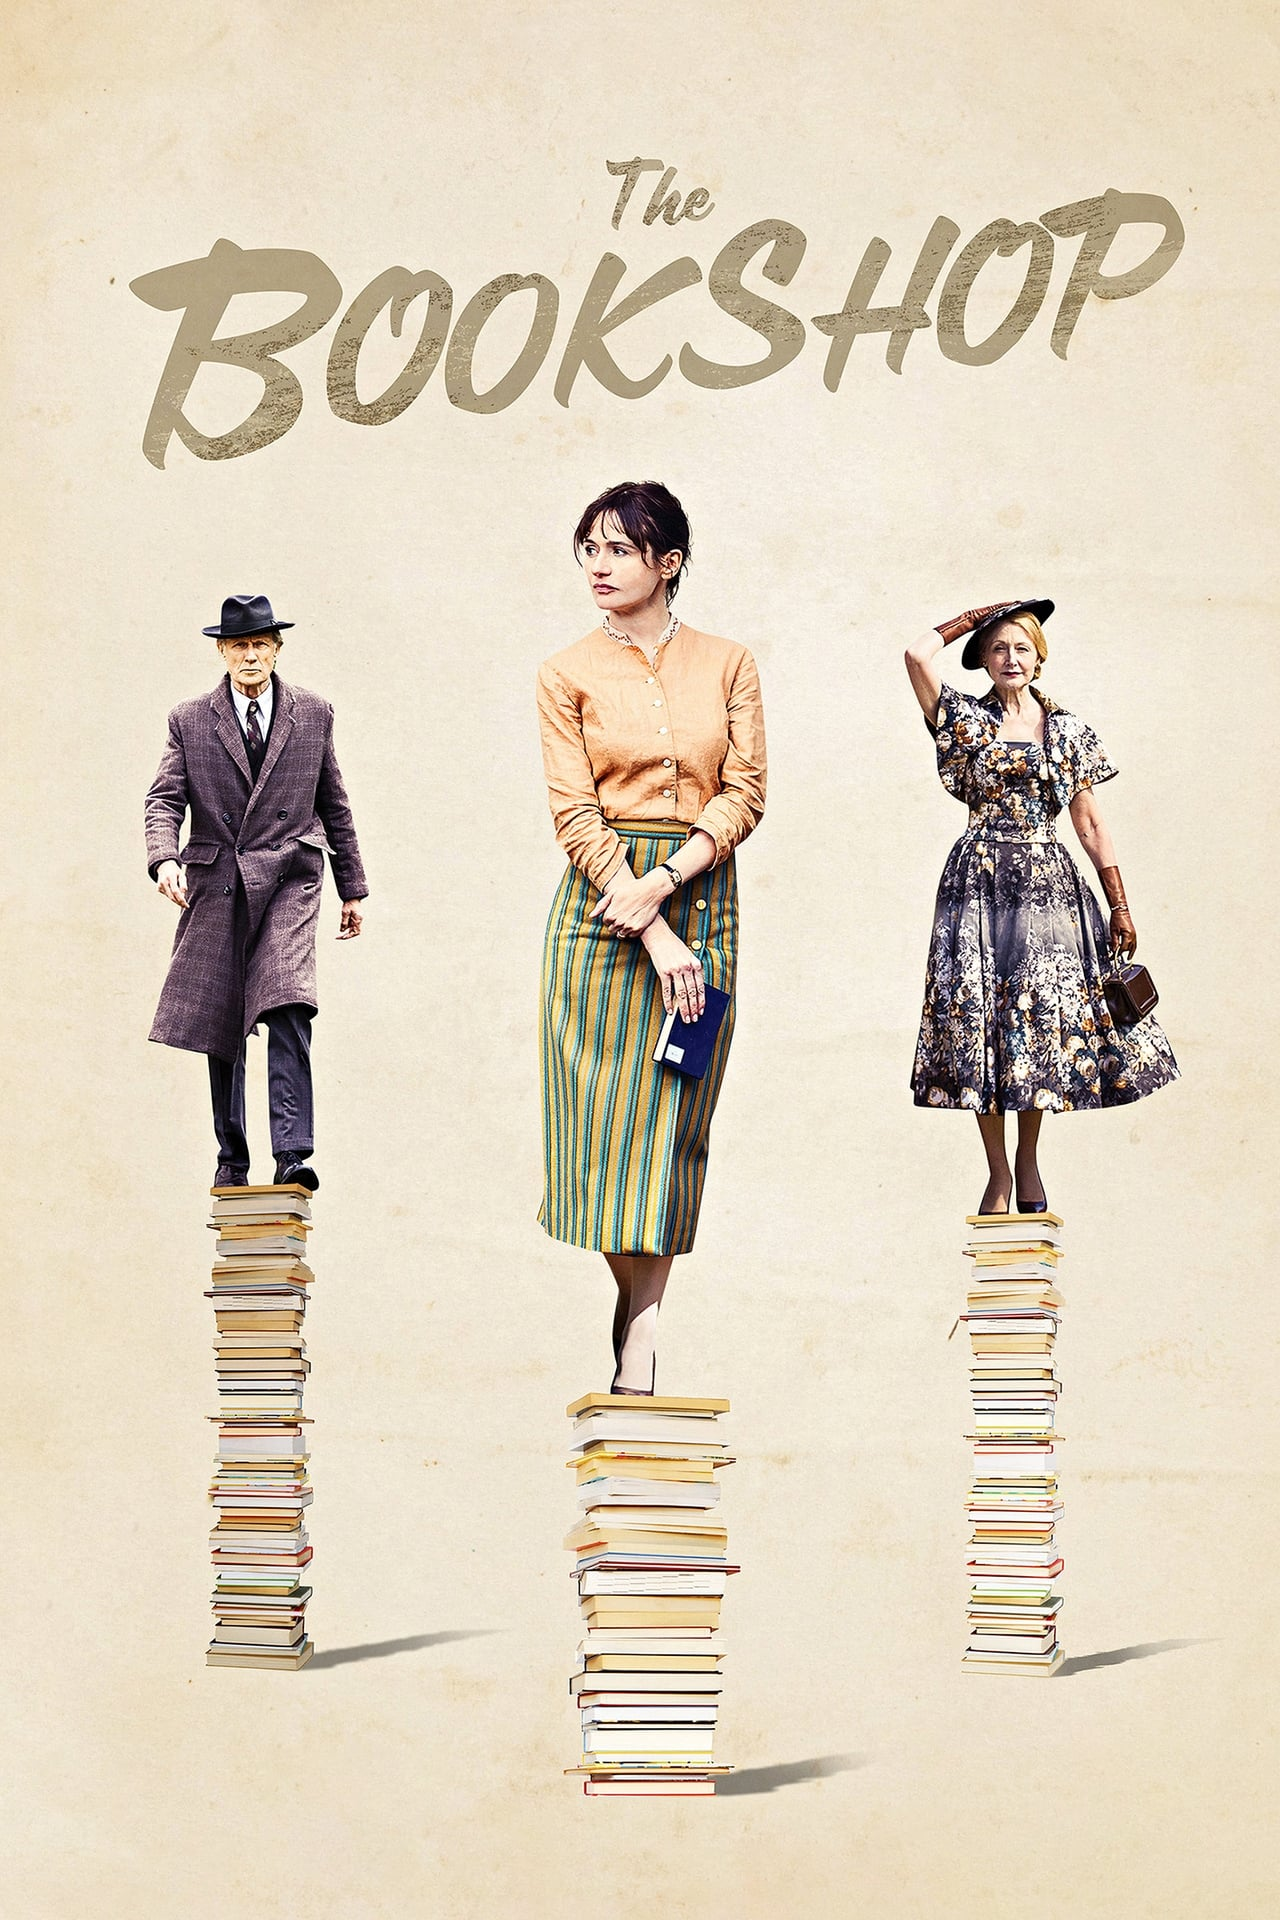 Putlocker The Bookshop (2018)